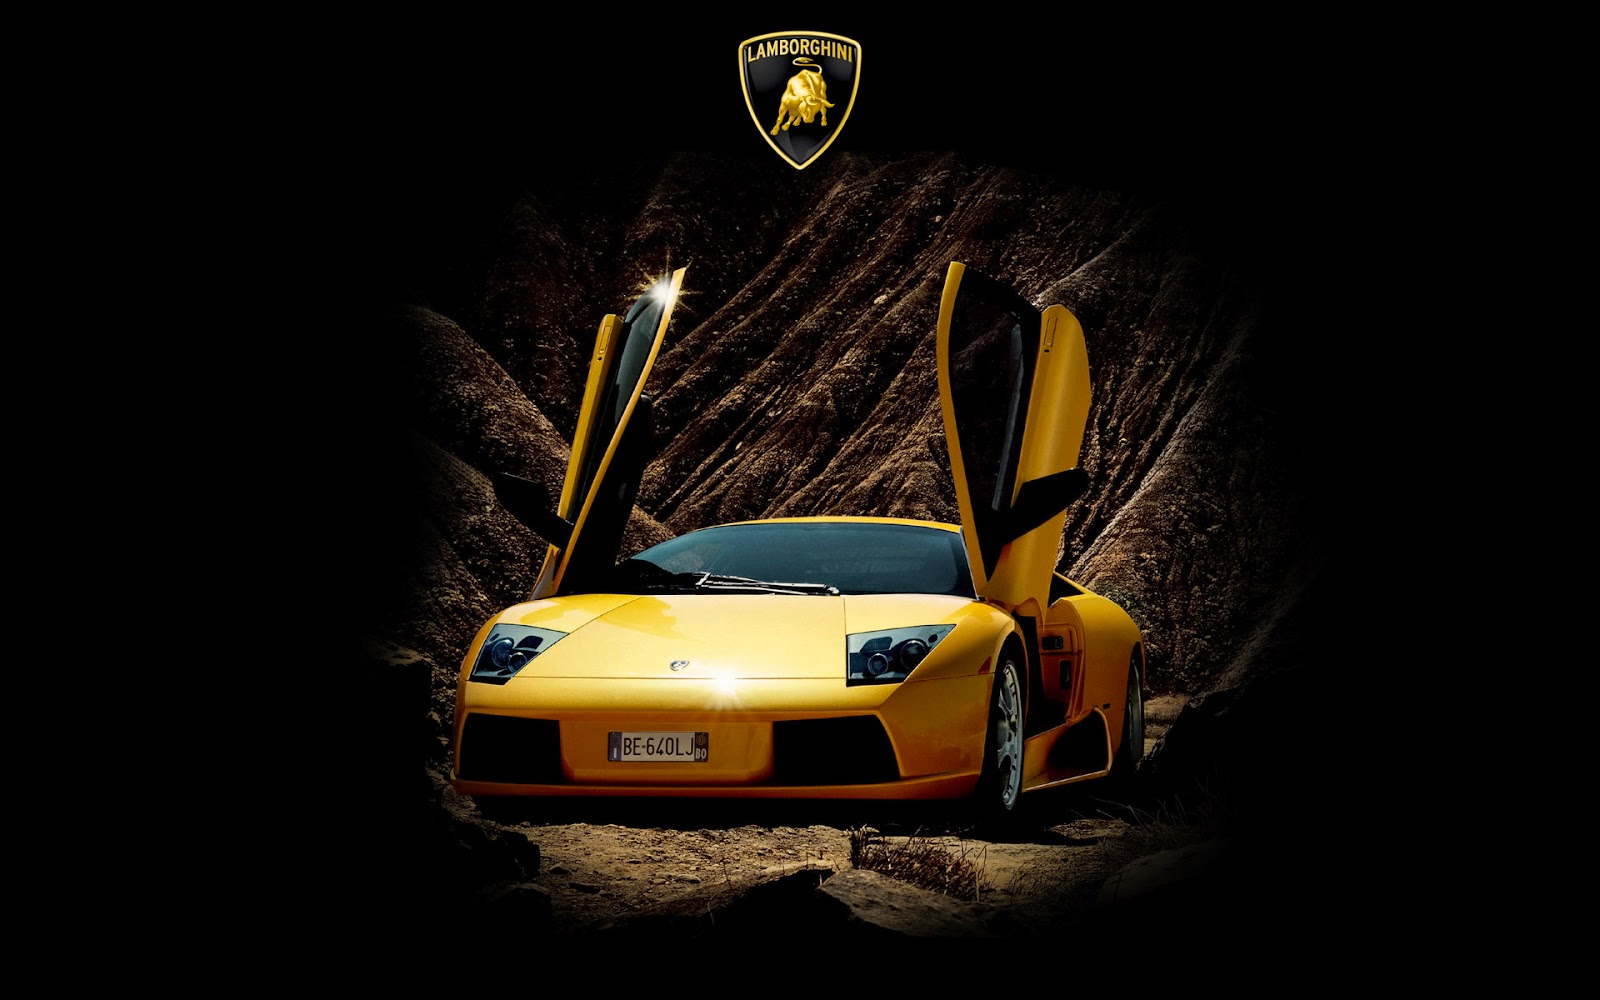 Lamborghini wallpaper HD for Desktop